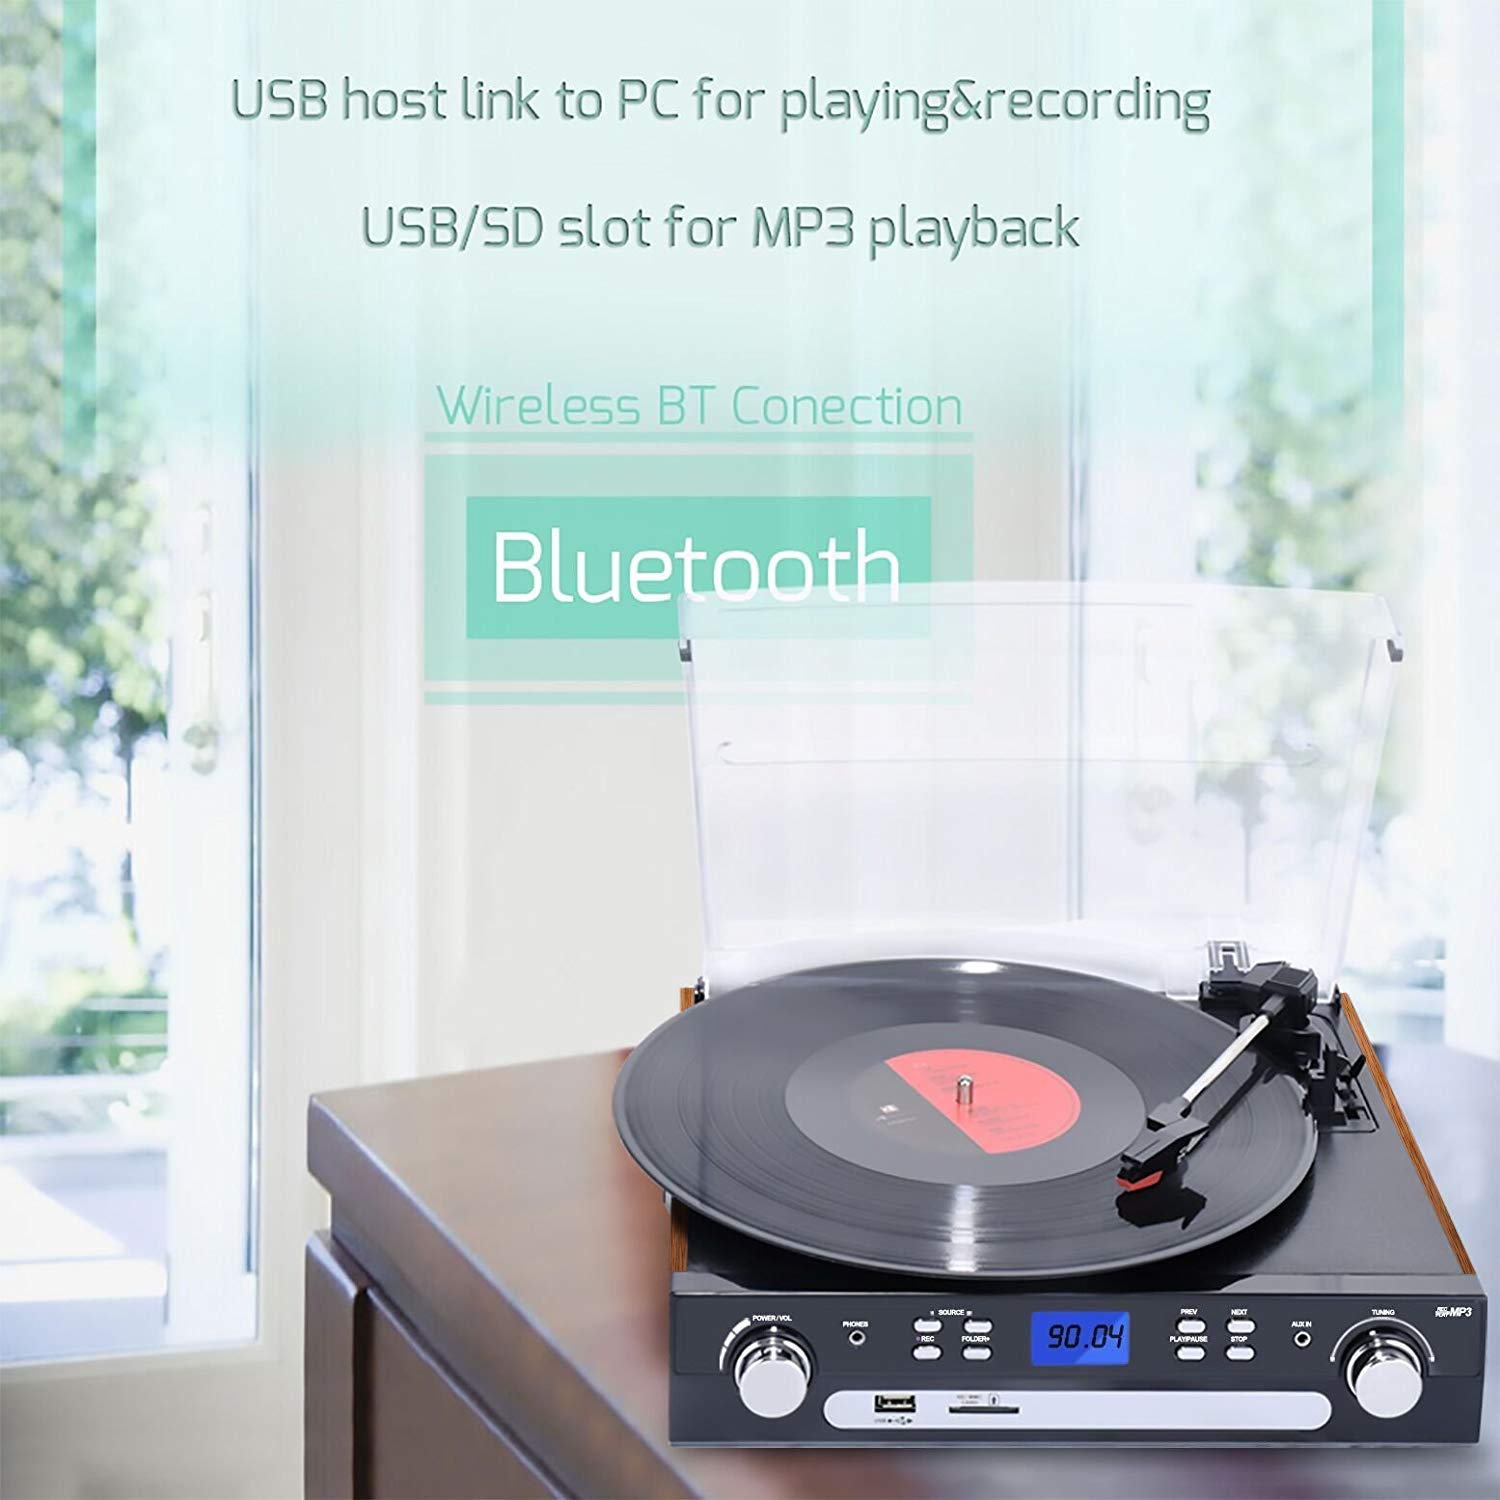 DIGITNOW! Bluetooth Record Player with Stereo Speakers, Turntable for Vinyl to MP3 with Cassette Play, AM/FM Radio, Remote Control, USB/SD Encoding, 3.5mm Music Output Jack